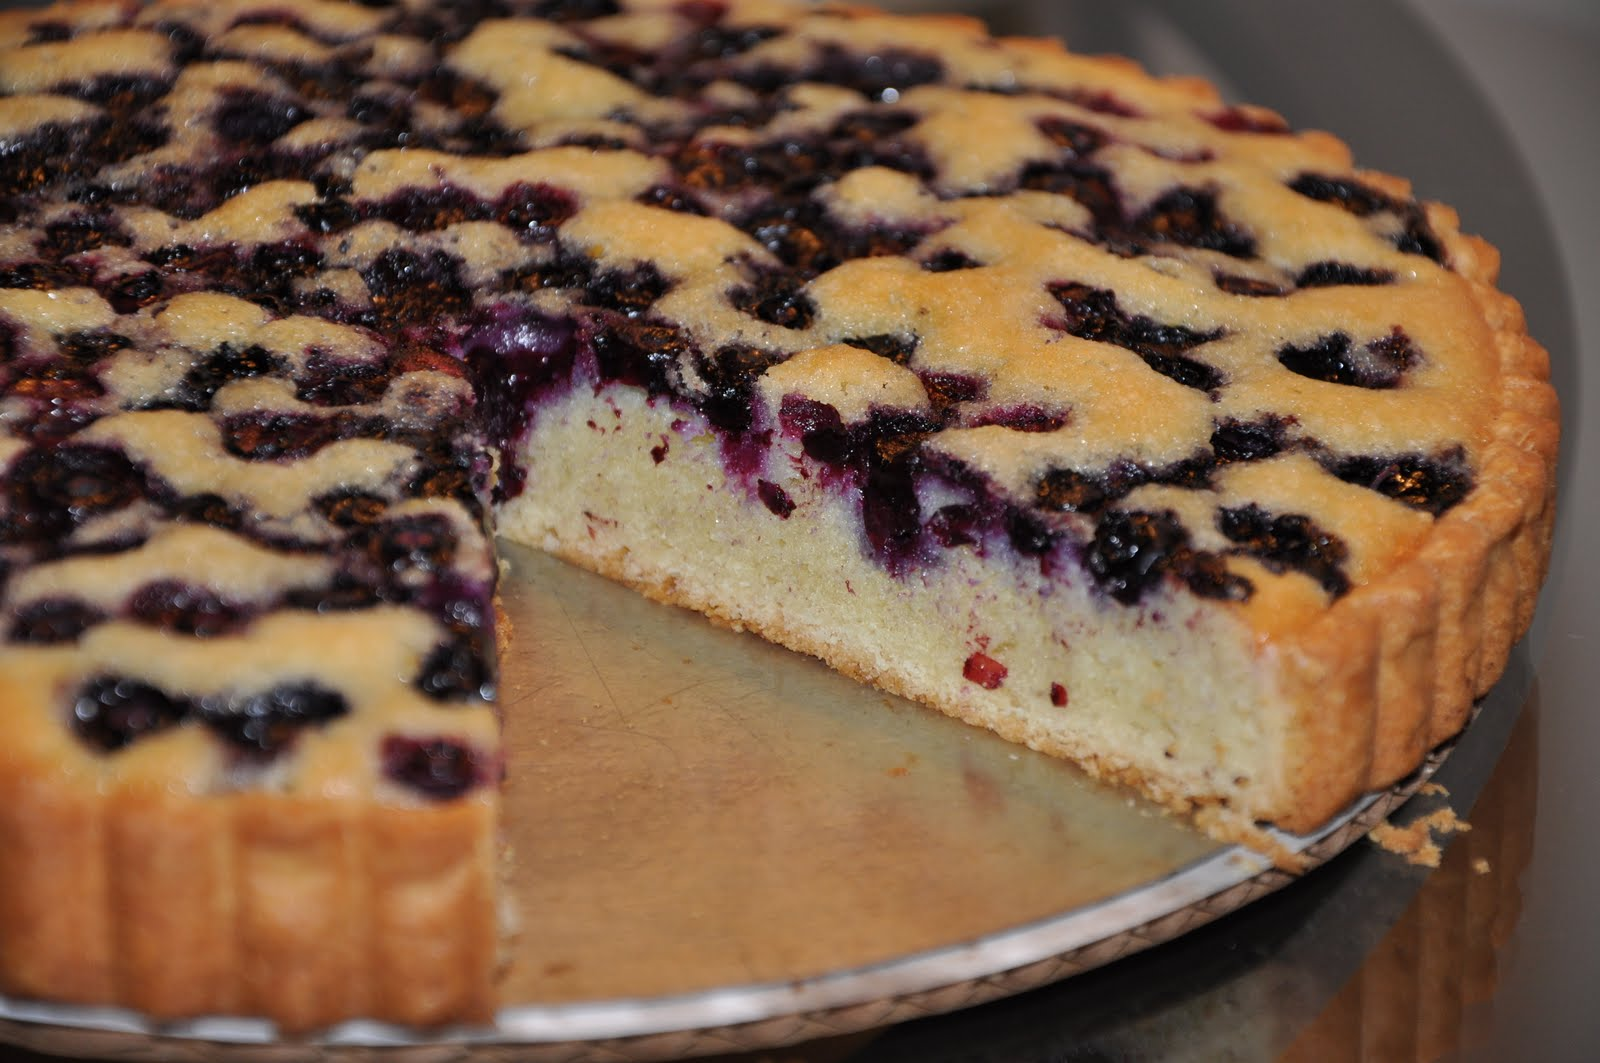 Blueberry Financier